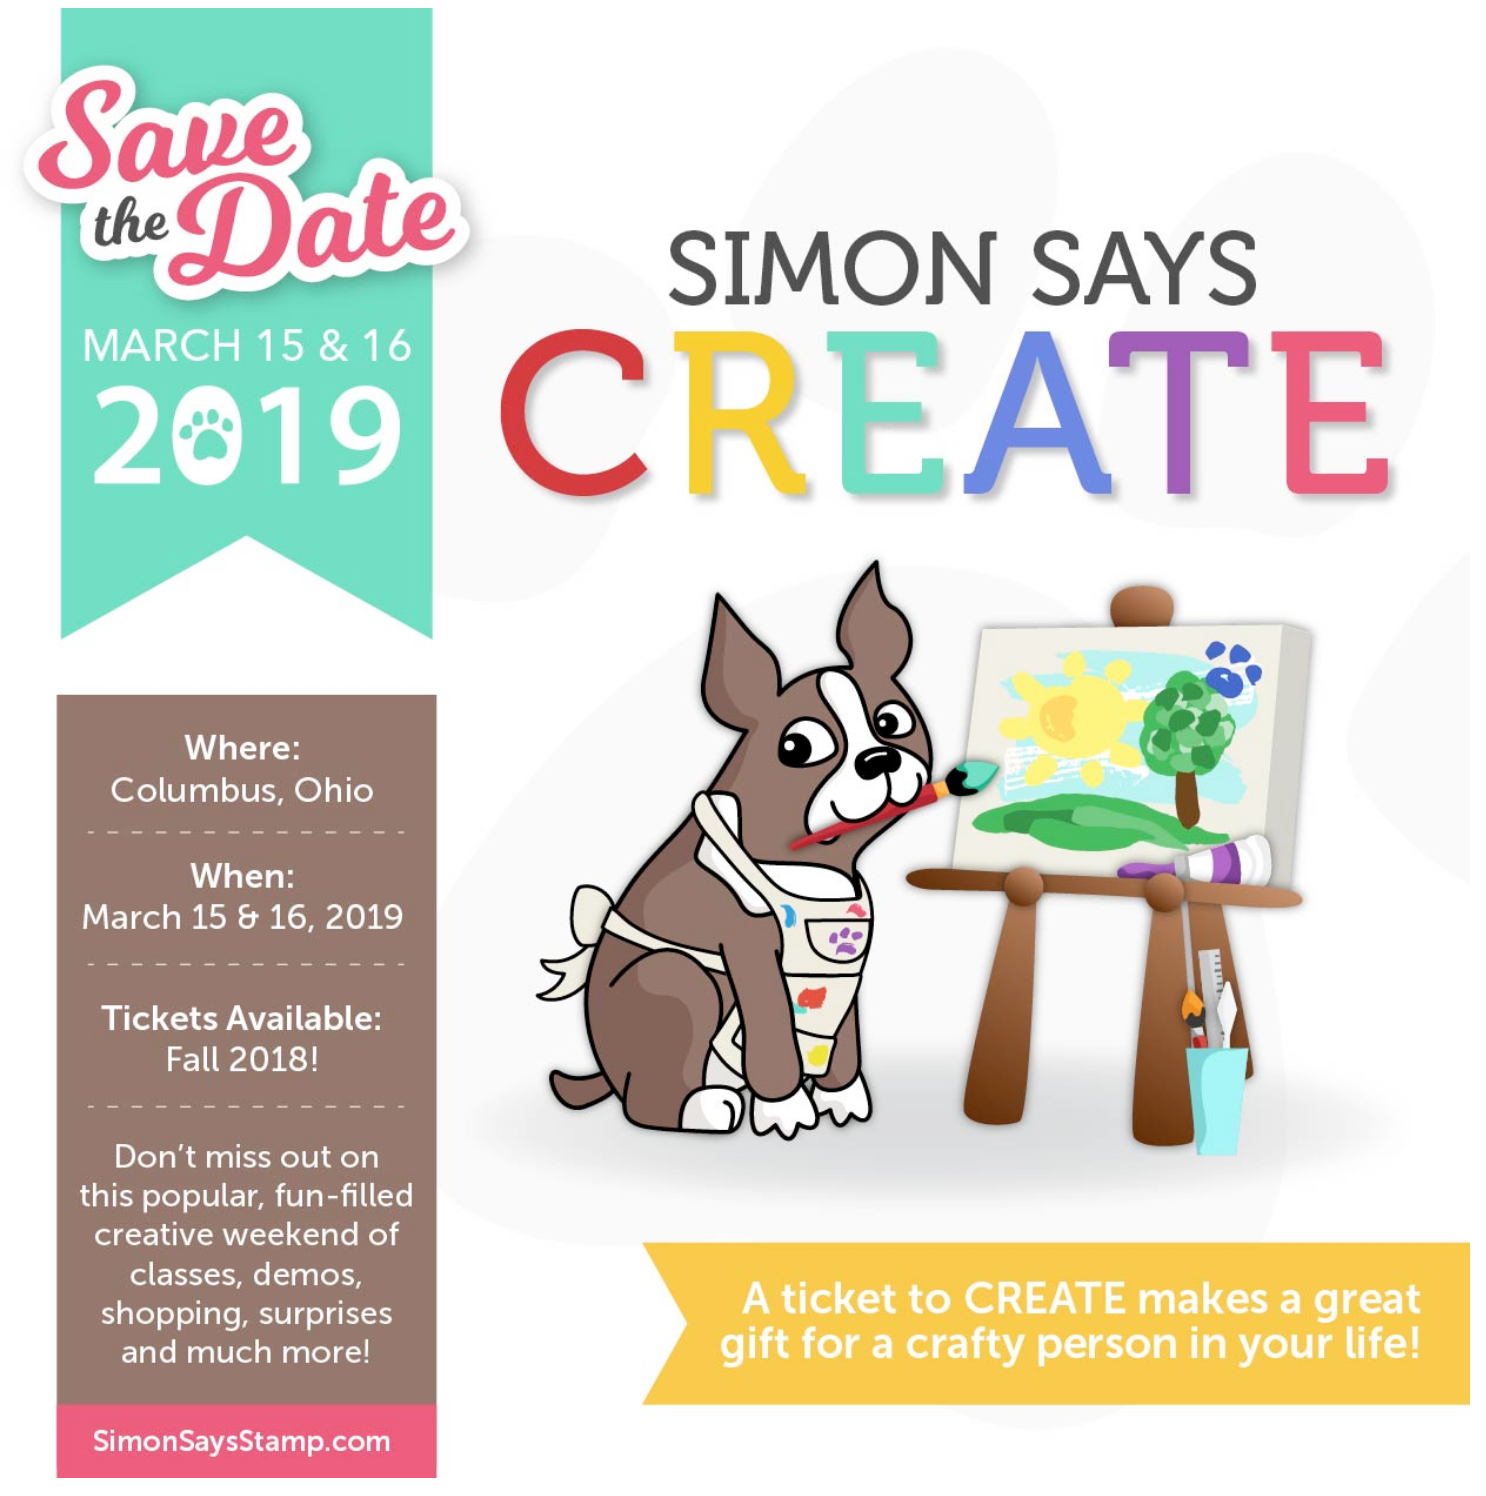 Simon Says CREATE 2019 Ticket A zoom image